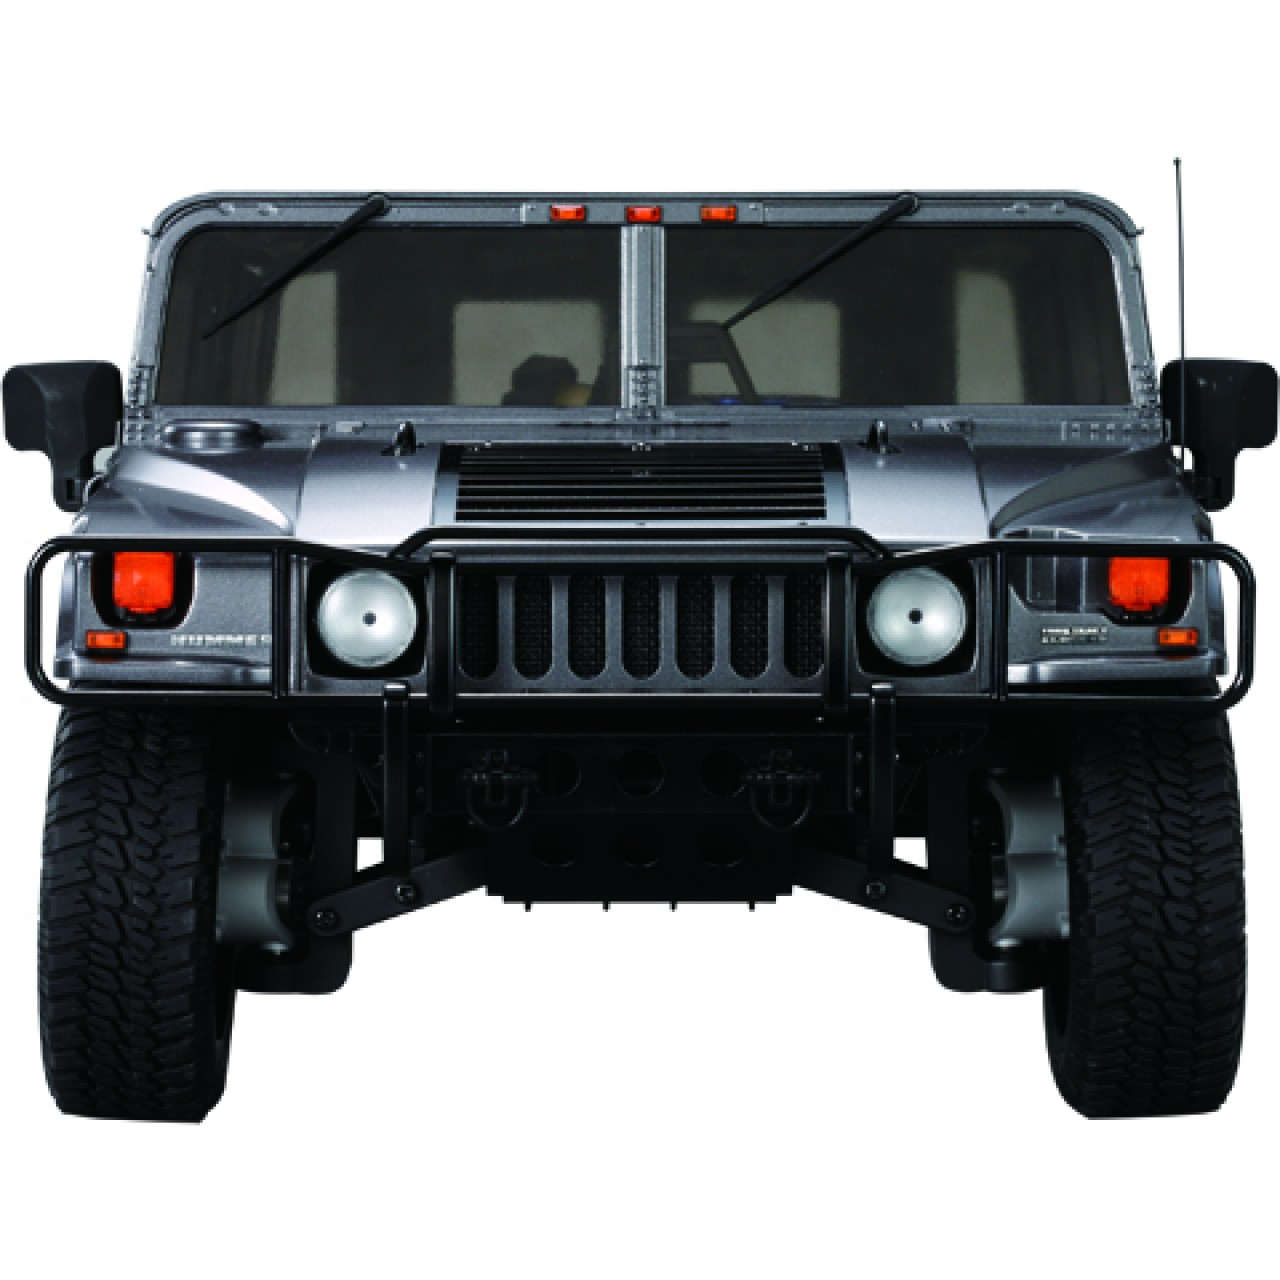 hummer h1 rc model car 1 8 scale de agostini modelspace